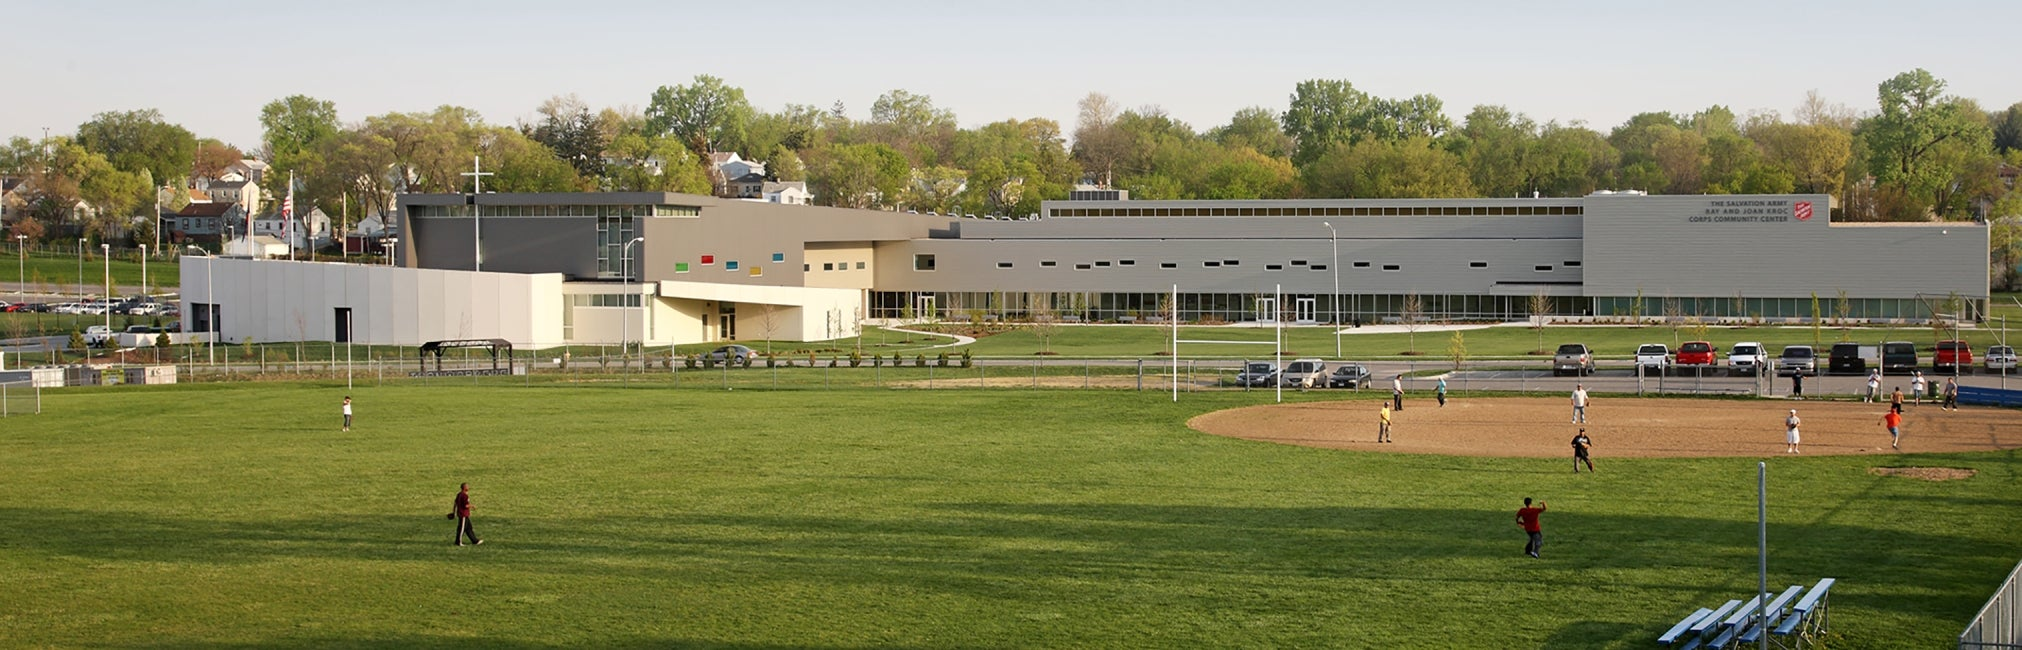 Ray and Joan Kroc Community Center exterior recreation field